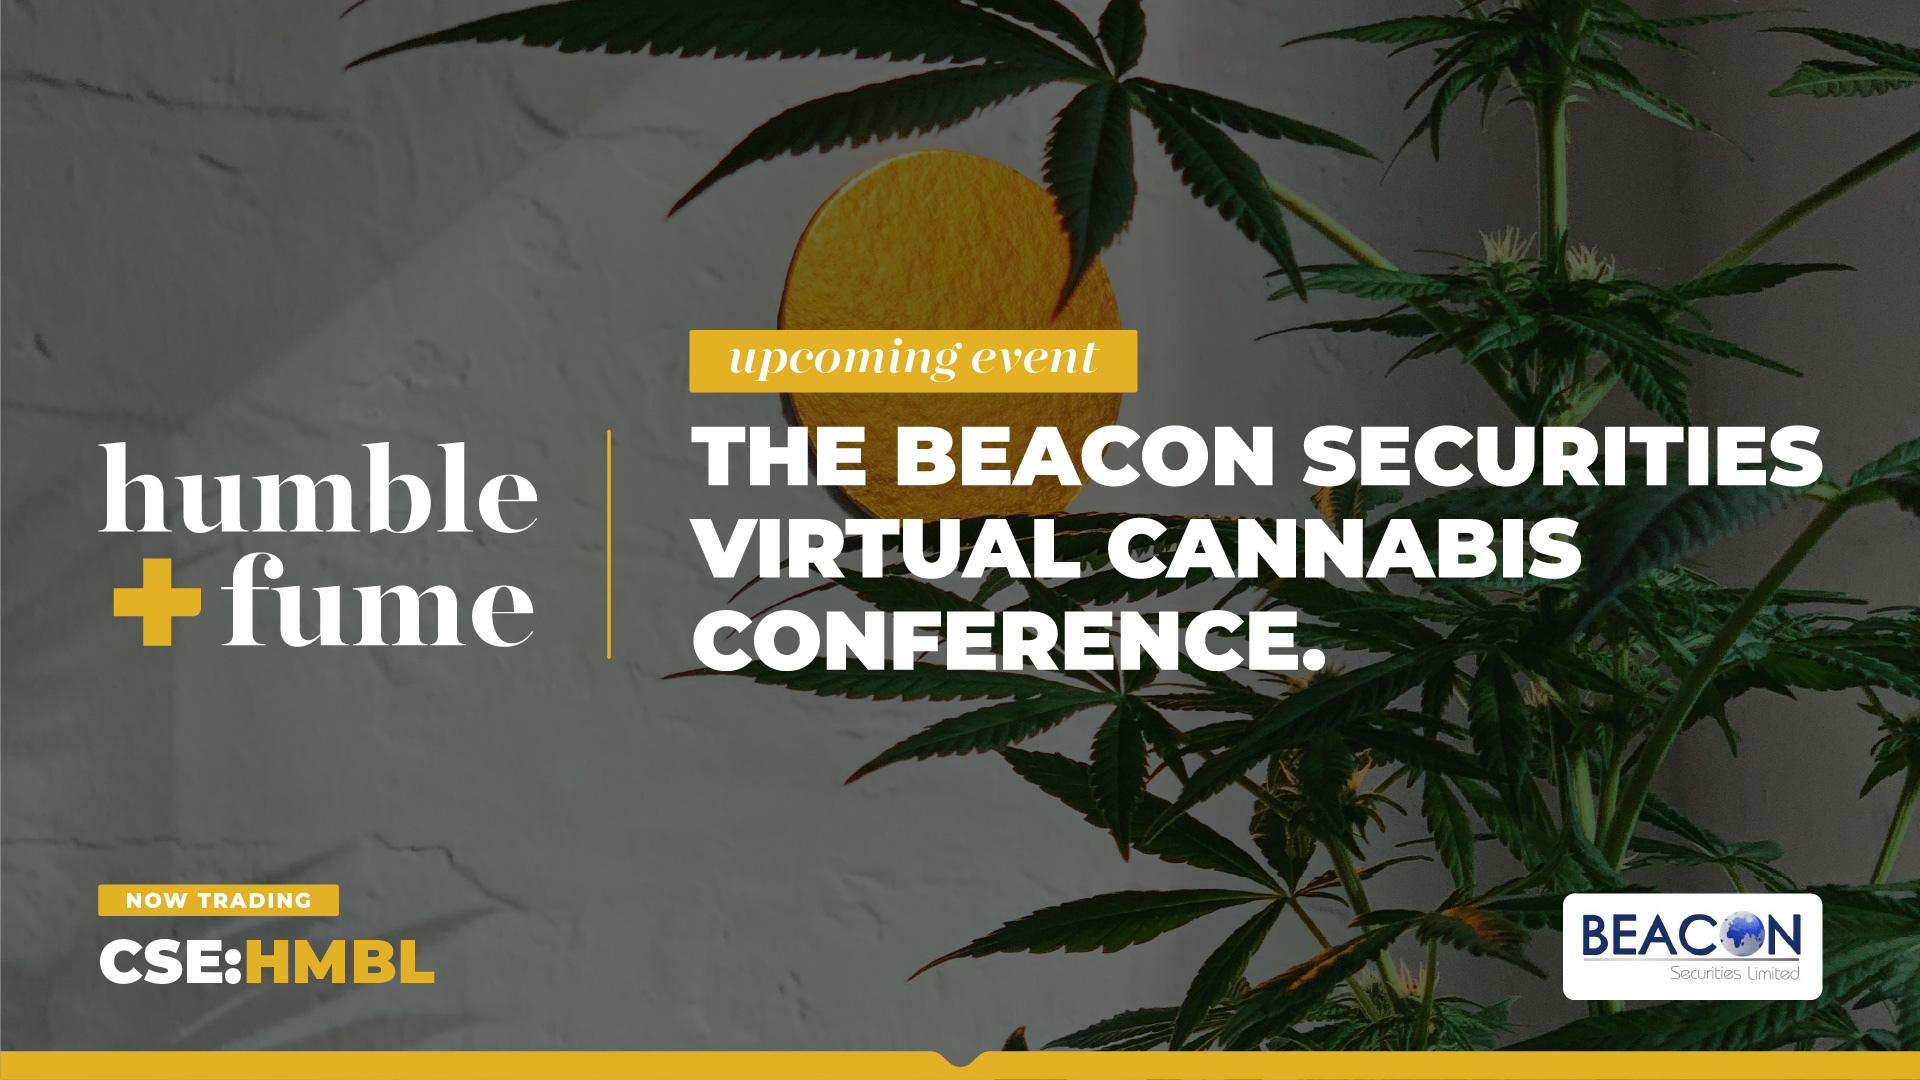 Humble & Fume to Participate in the Beacon Securities Virtual Cannabis Conference 2021 on September 9th